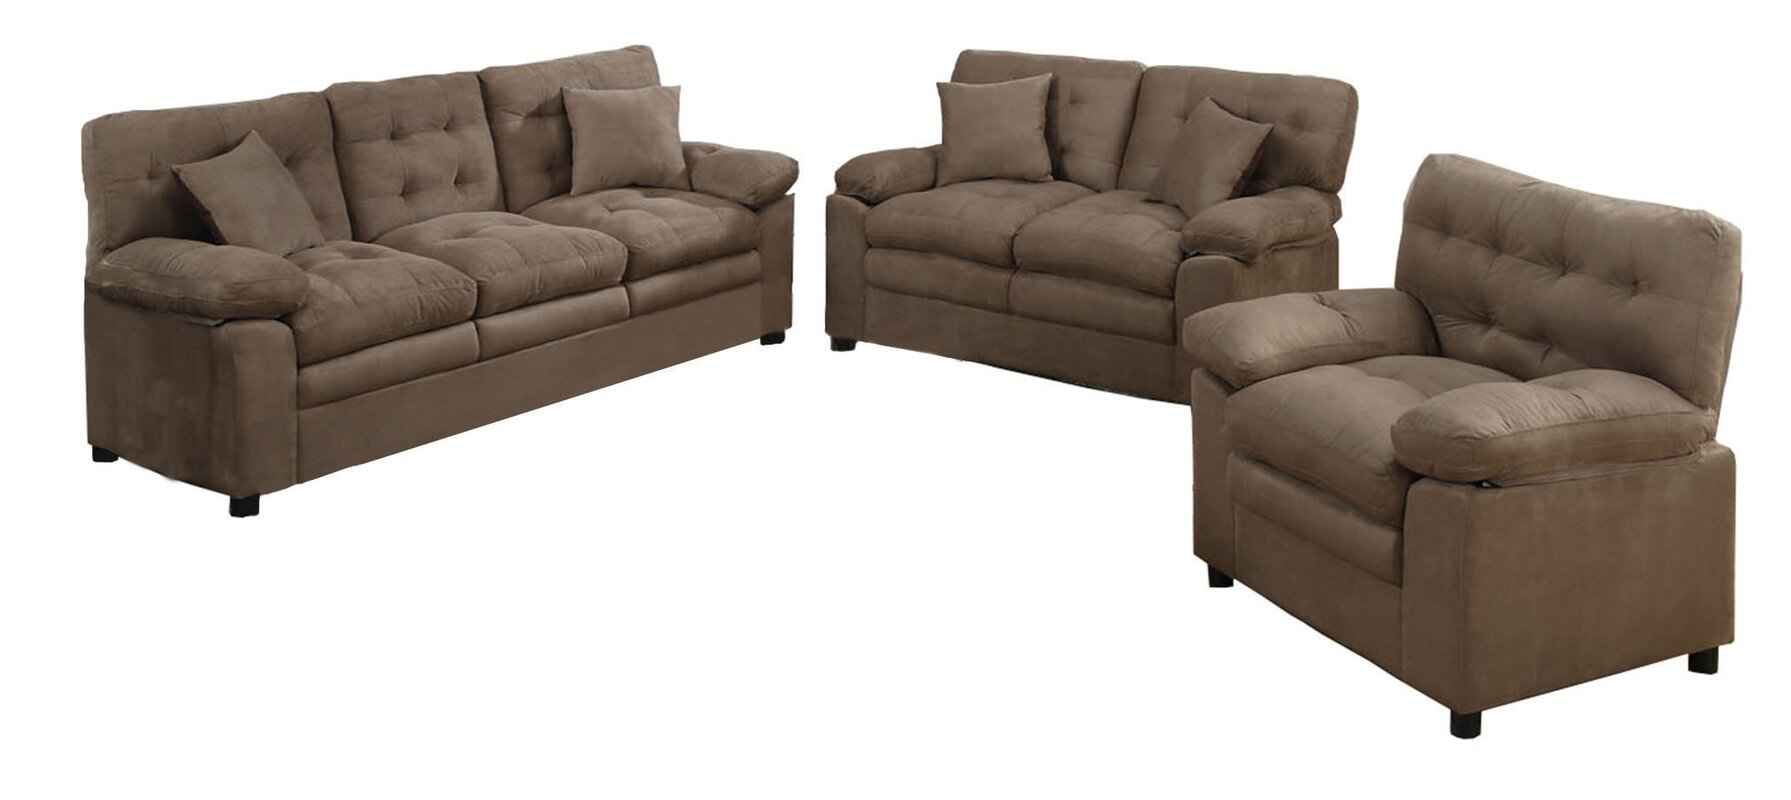 Three Piece Living Room Set Image Of Gray 3 Piece Living Room 3. AJ ...